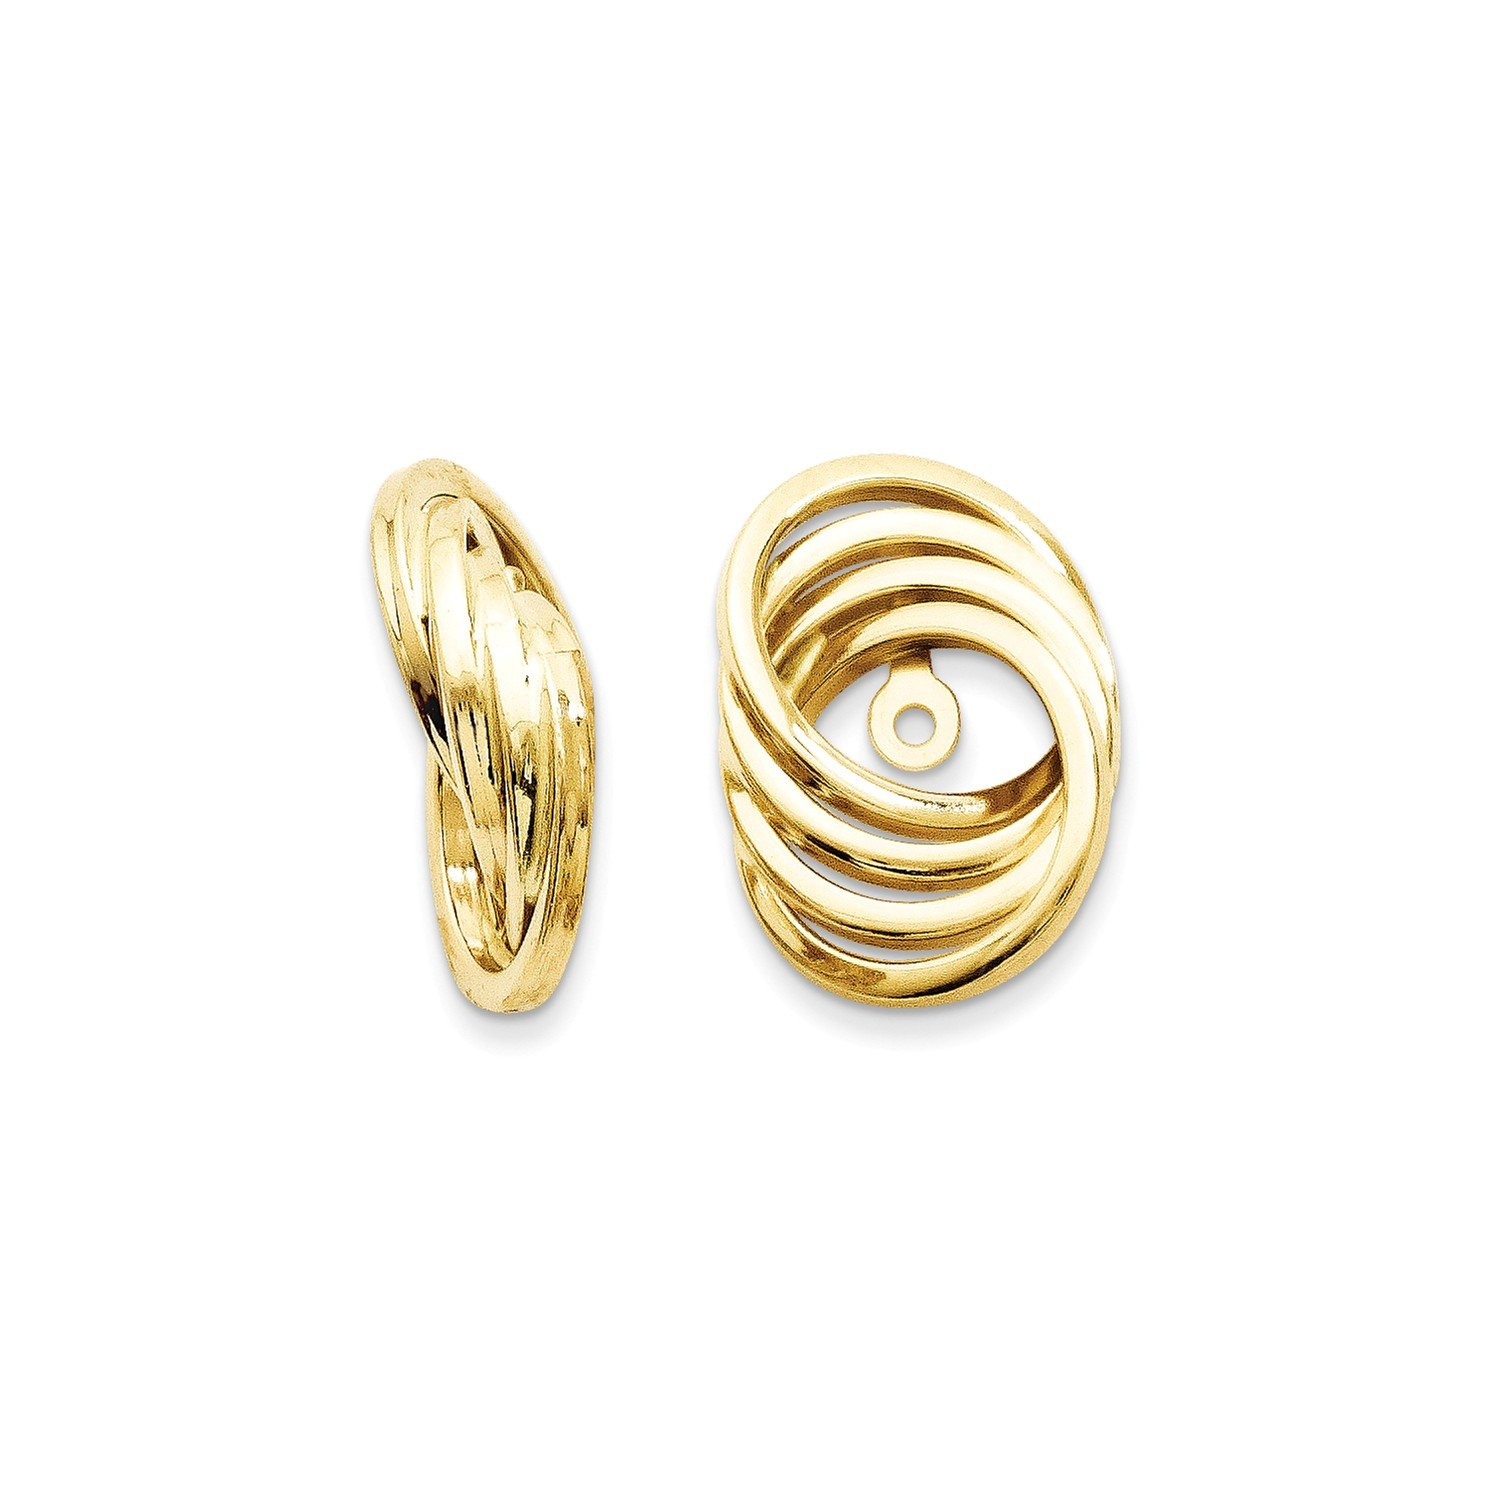 Roy Rose Jewelry 14K Yellow Gold Polished Love Knot Earring Jackets 14mm length